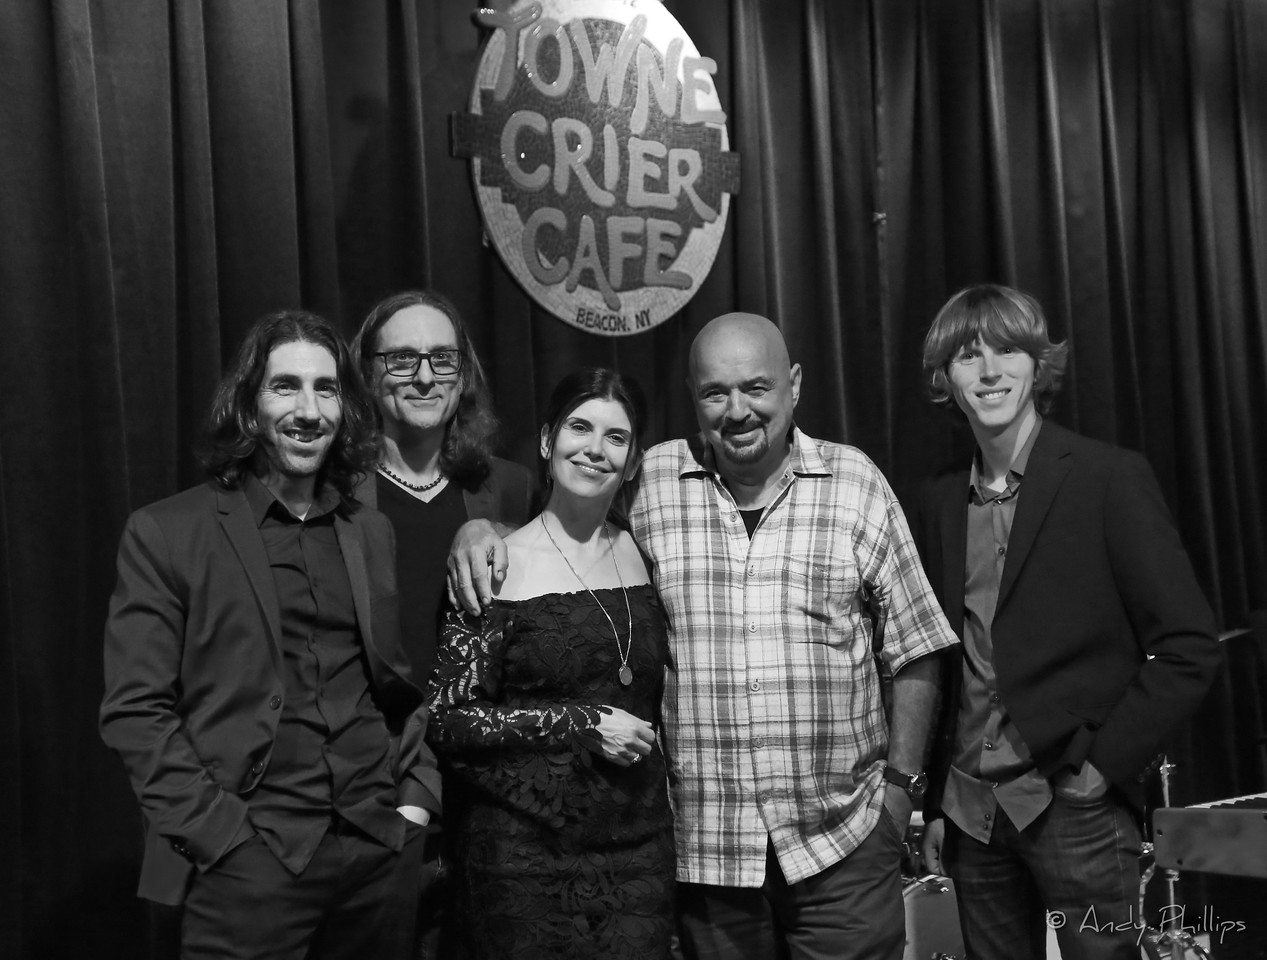 Diamond Hotel at the Towne Crier Cafe,  4.27.17  Photo Credit: Andrew C. Phillips for the Towne Crier